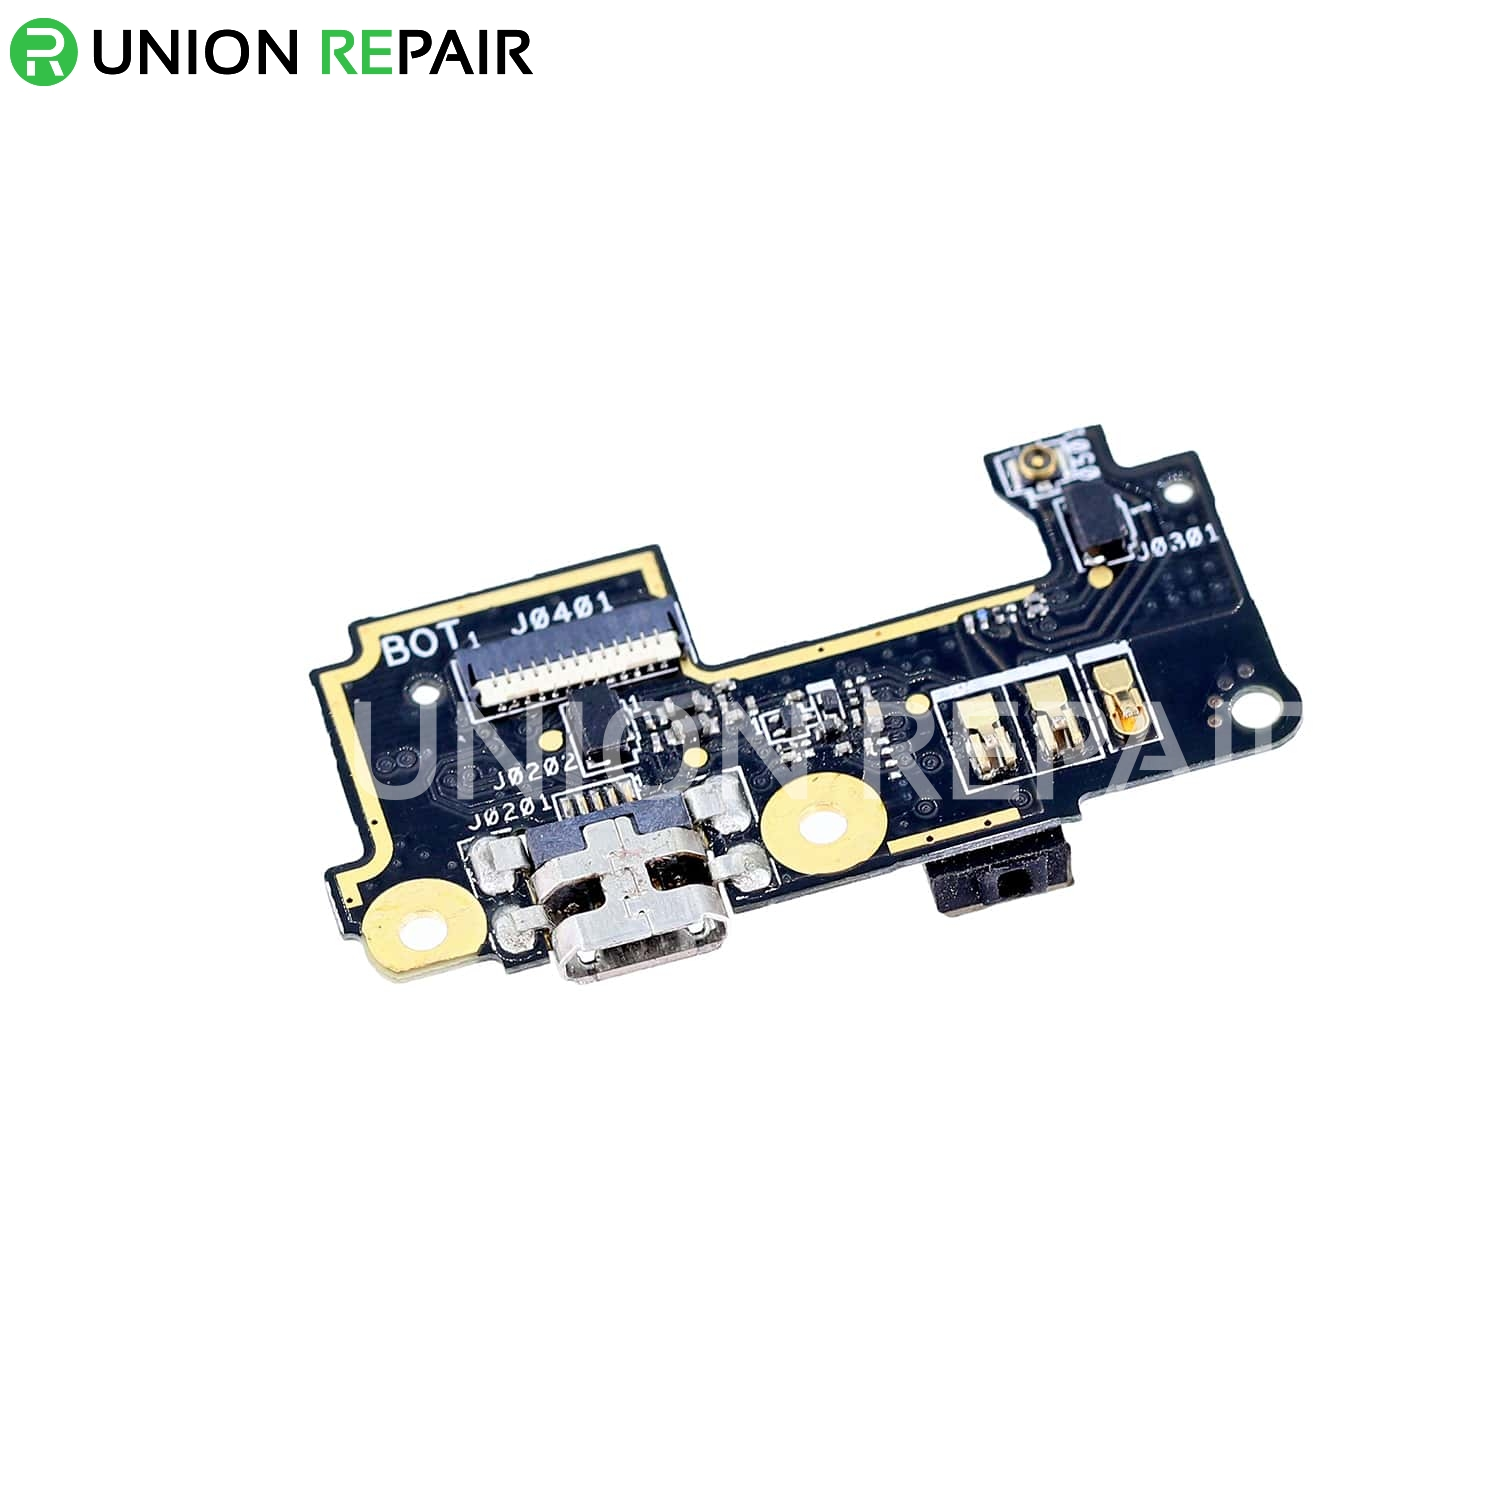 Replacement for Asus Zenfone 5 A500CG Charging Port PCB Board